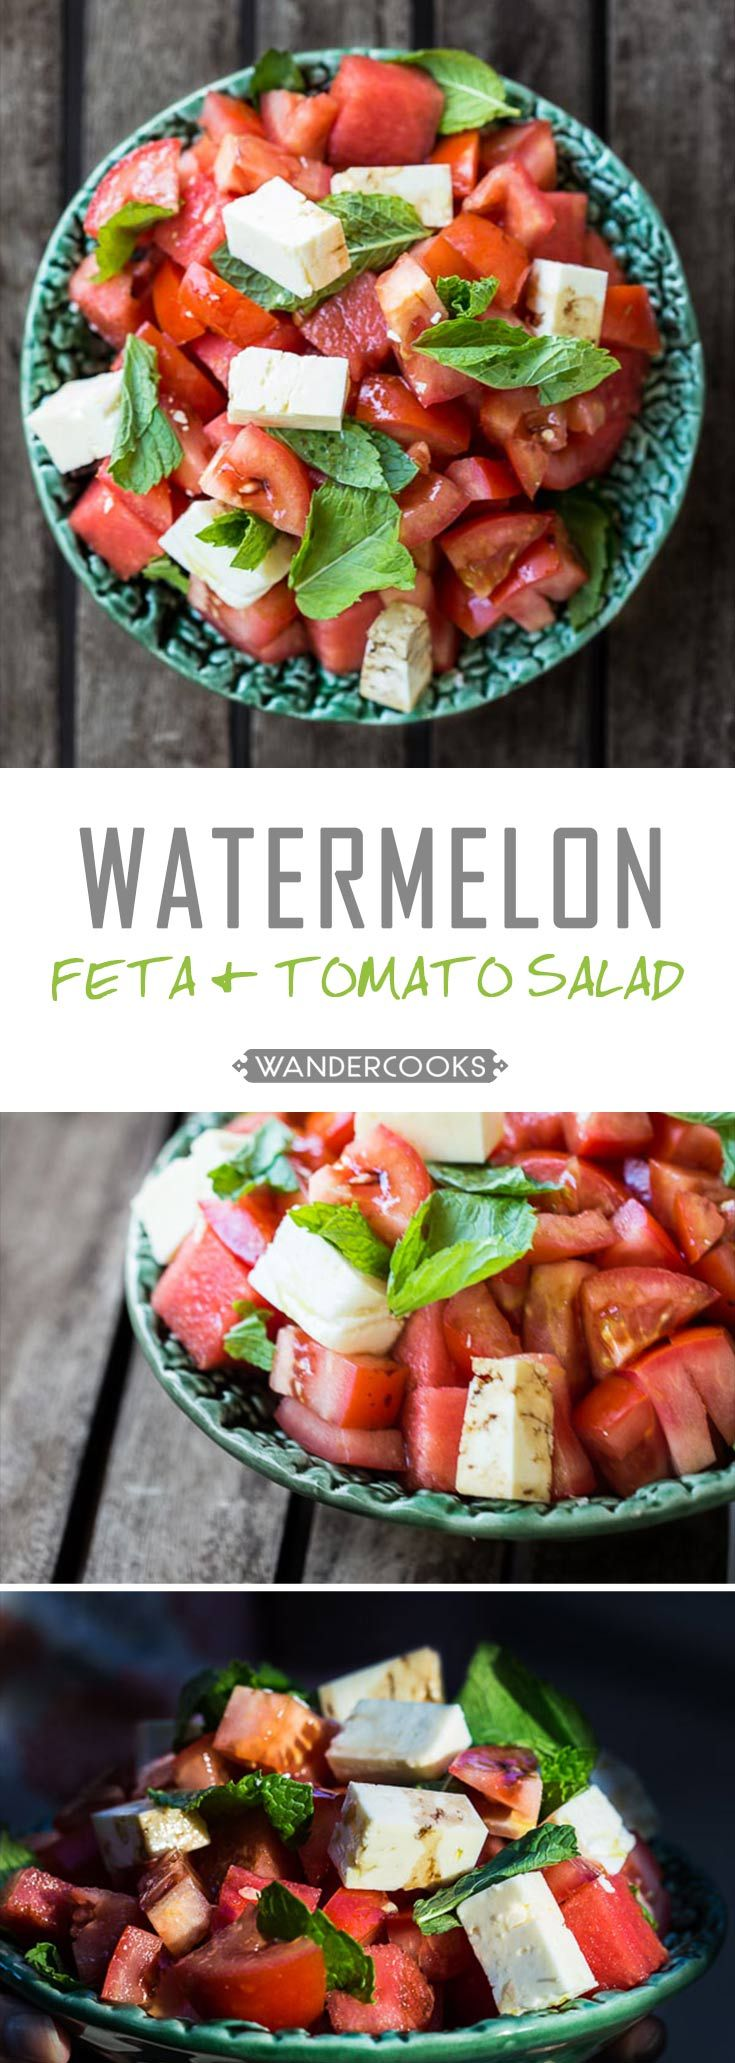 Greek Watermelon, Tomato & Feta Salad with Mint - Fresh, summer flavours are ready to kick all other salads to the kerb. This vegetarian delight is ready to change your life in 5 minutes. | wandercooks.com